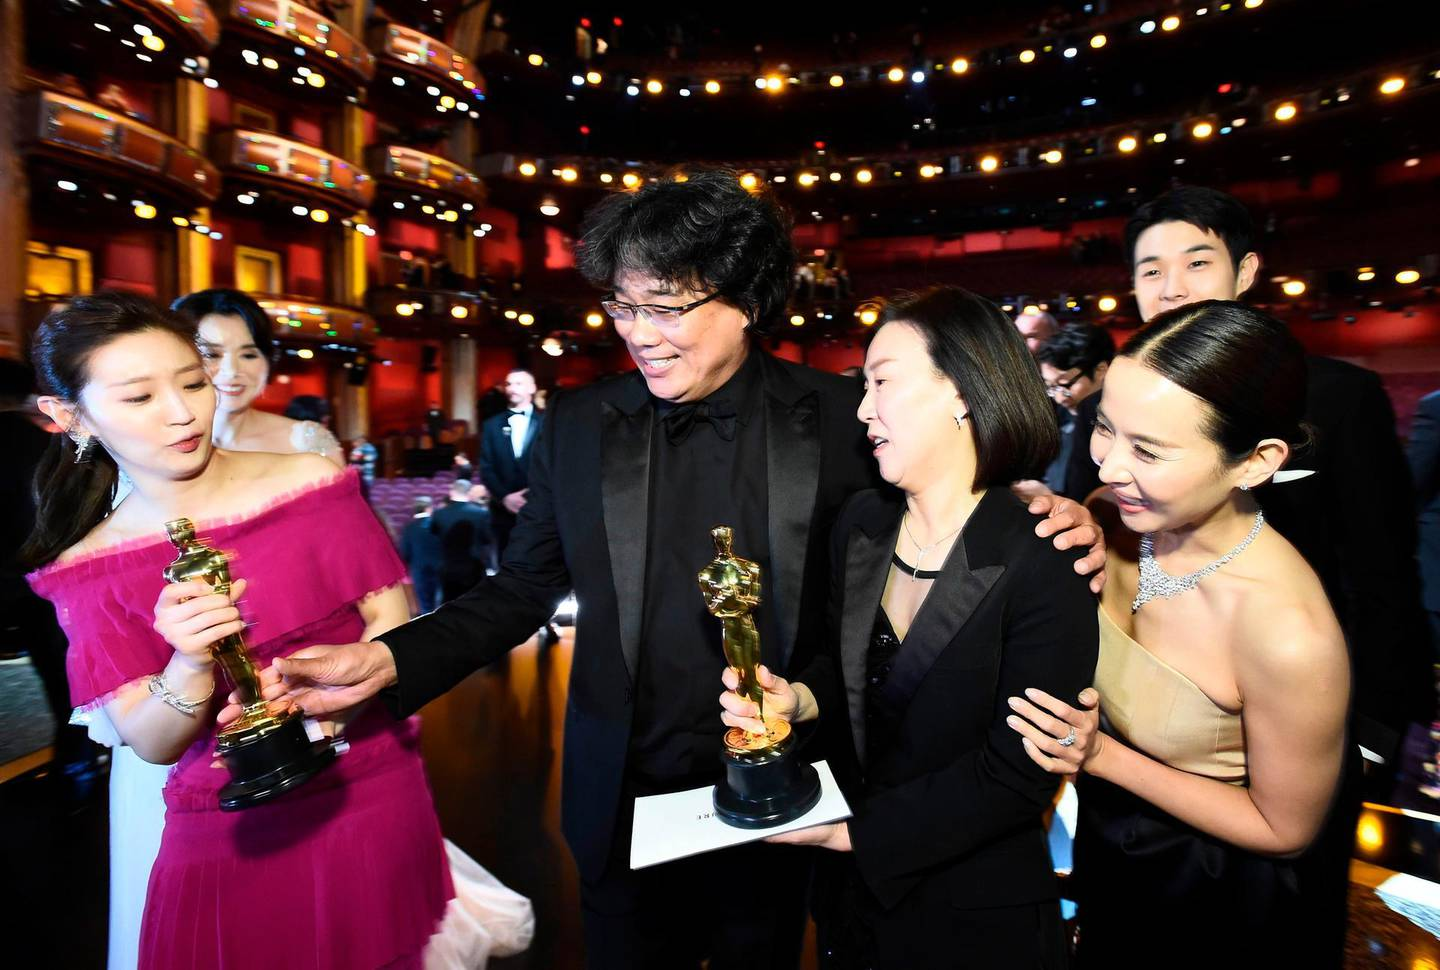 """TOPSHOT - In this handout photo provided by A.M.P.A.S. Best Picture Award winners for """"Parasite"""" pose onstage during the 92nd Annual Academy Awards at the Dolby Theatre on February 09, 2020 in Hollywood, California. RESTRICTED TO EDITORIAL USE - MANDATORY CREDIT """"AFP PHOTO / AMPAS/ Matt Petit"""" - NO MARKETING - NO ADVERTISING CAMPAIGNS - DISTRIBUTED AS A SERVICE TO CLIENTS  / AFP / AMPAS / AMPAS / Matt Petit / RESTRICTED TO EDITORIAL USE - MANDATORY CREDIT """"AFP PHOTO / AMPAS/ Matt Petit"""" - NO MARKETING - NO ADVERTISING CAMPAIGNS - DISTRIBUTED AS A SERVICE TO CLIENTS"""